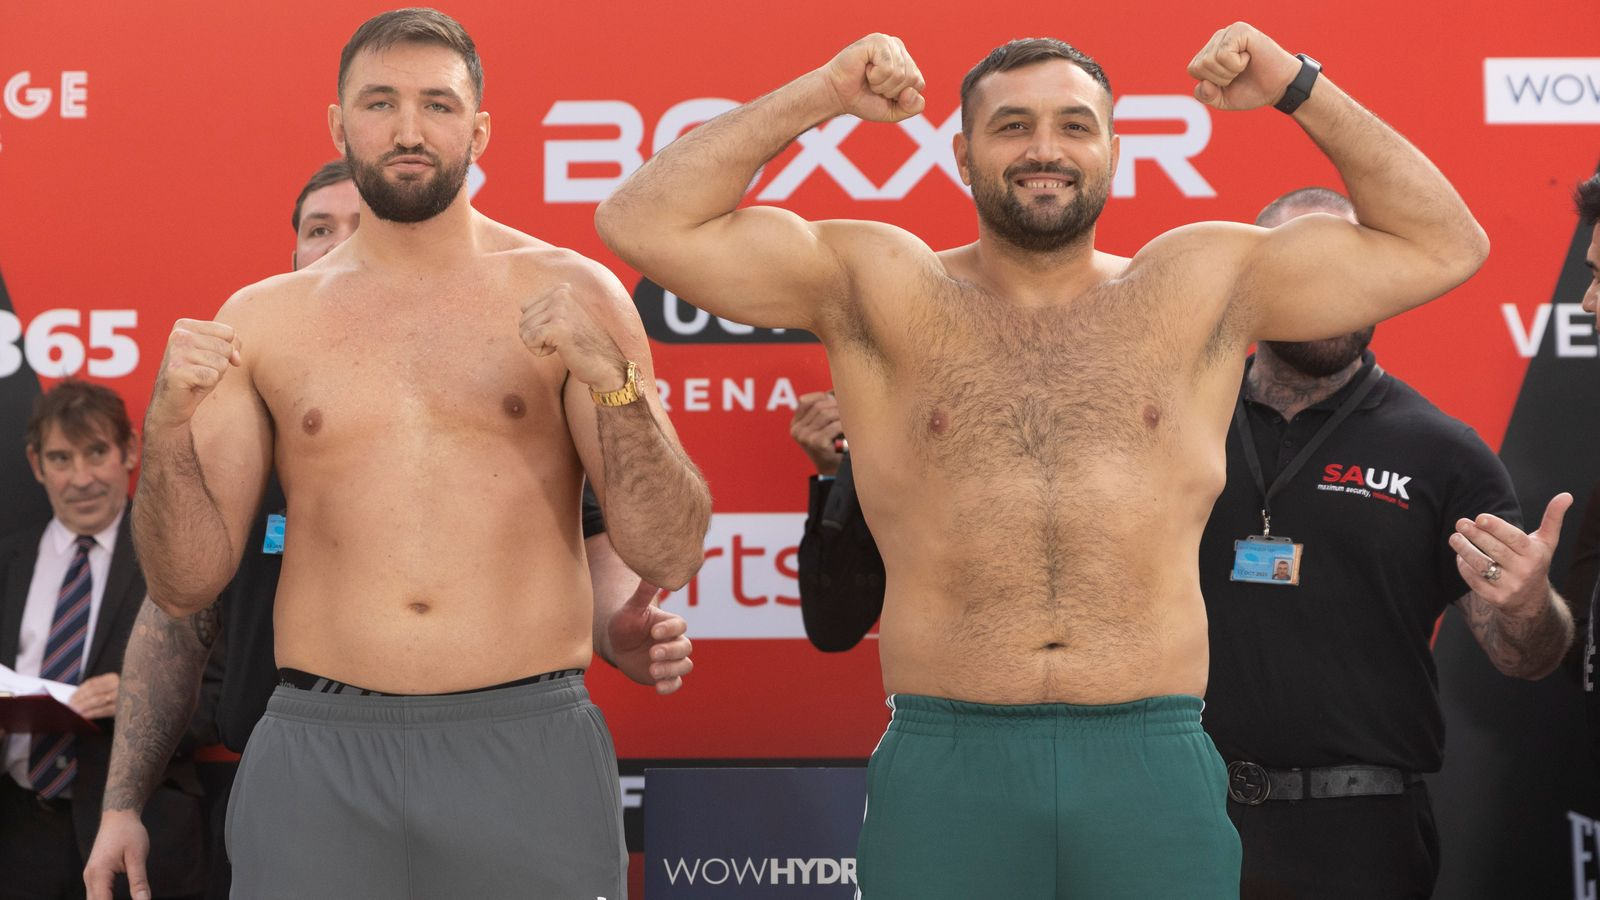 Hughie Fury to fight Christian Hammer in a heavyweight battle - watch a live stream here